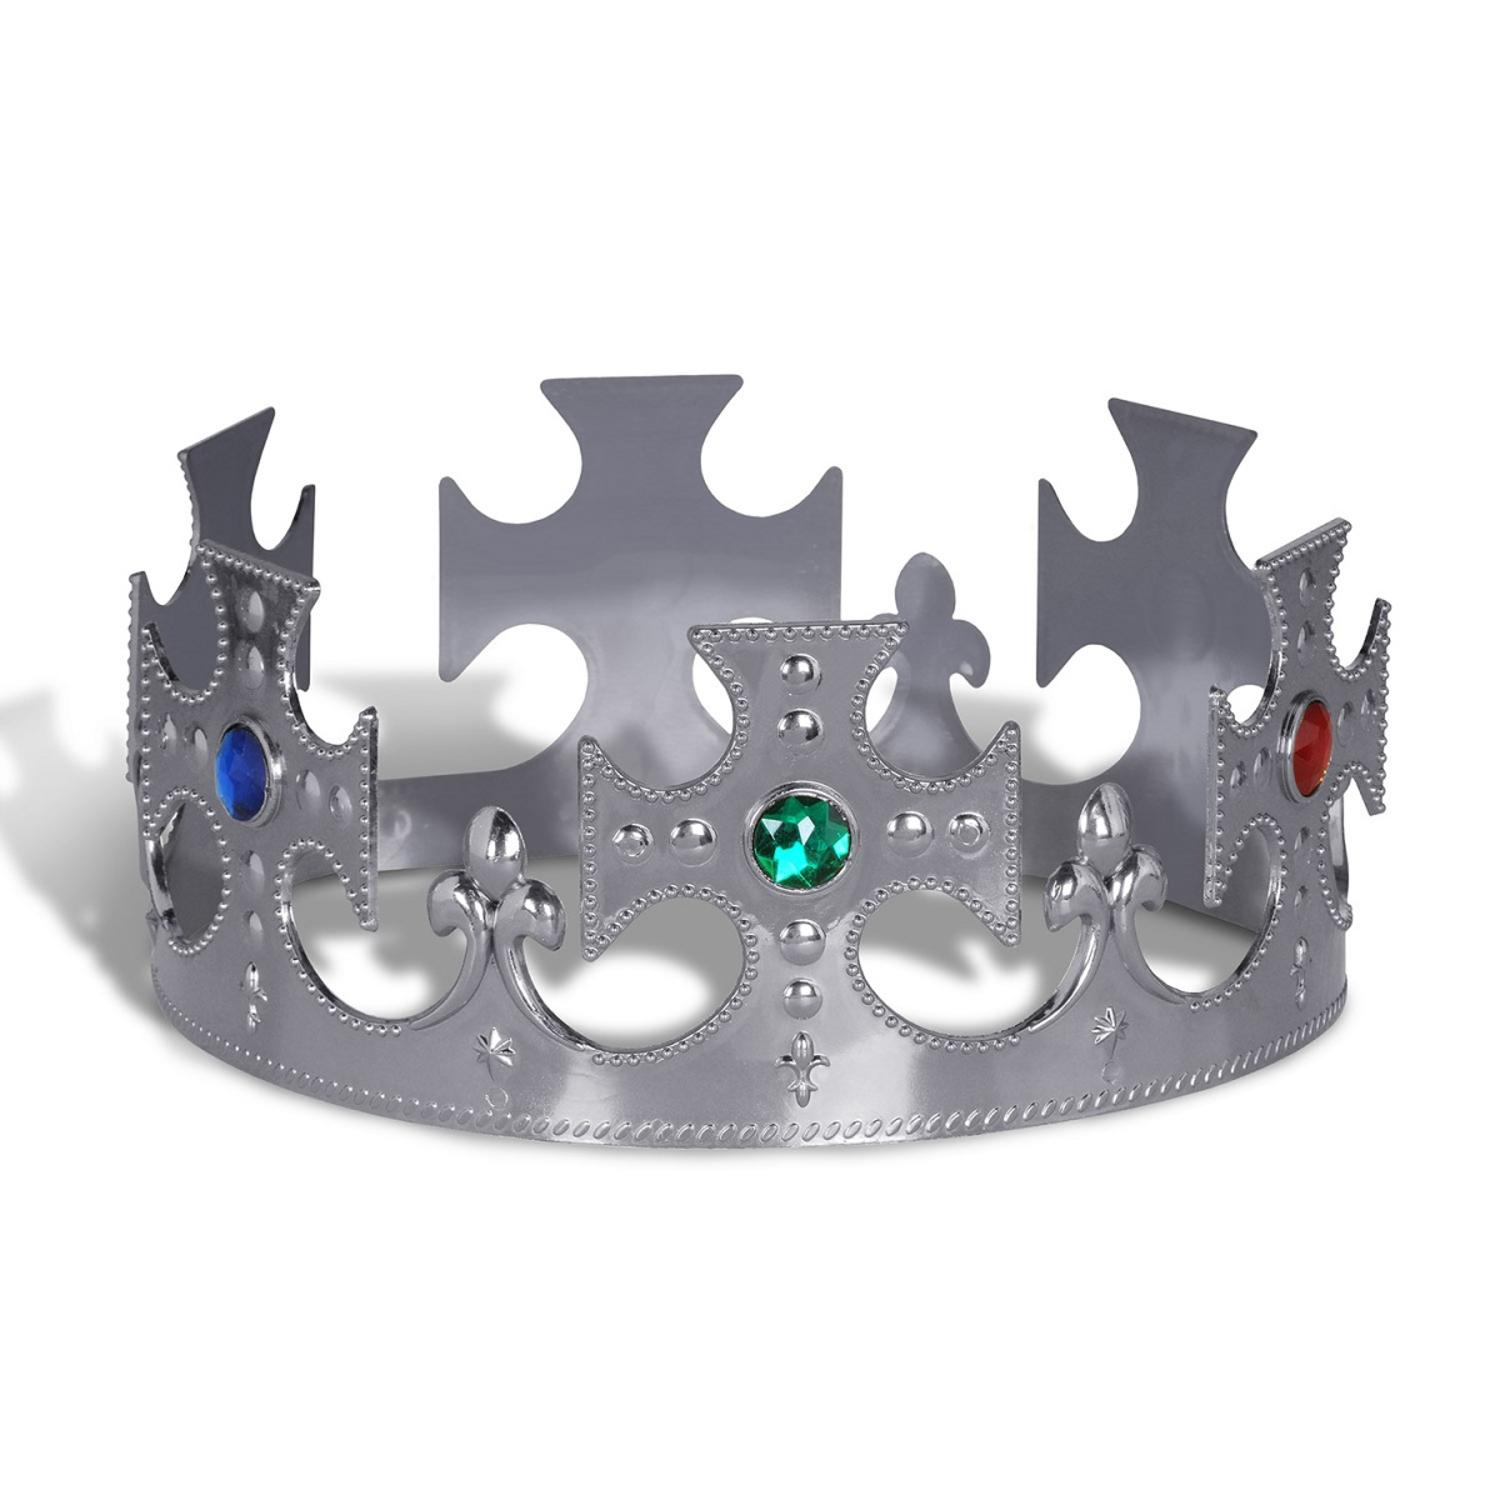 Club Pack of 12 Plastic Jeweled Silver King's Crown Adjustable Party Hat